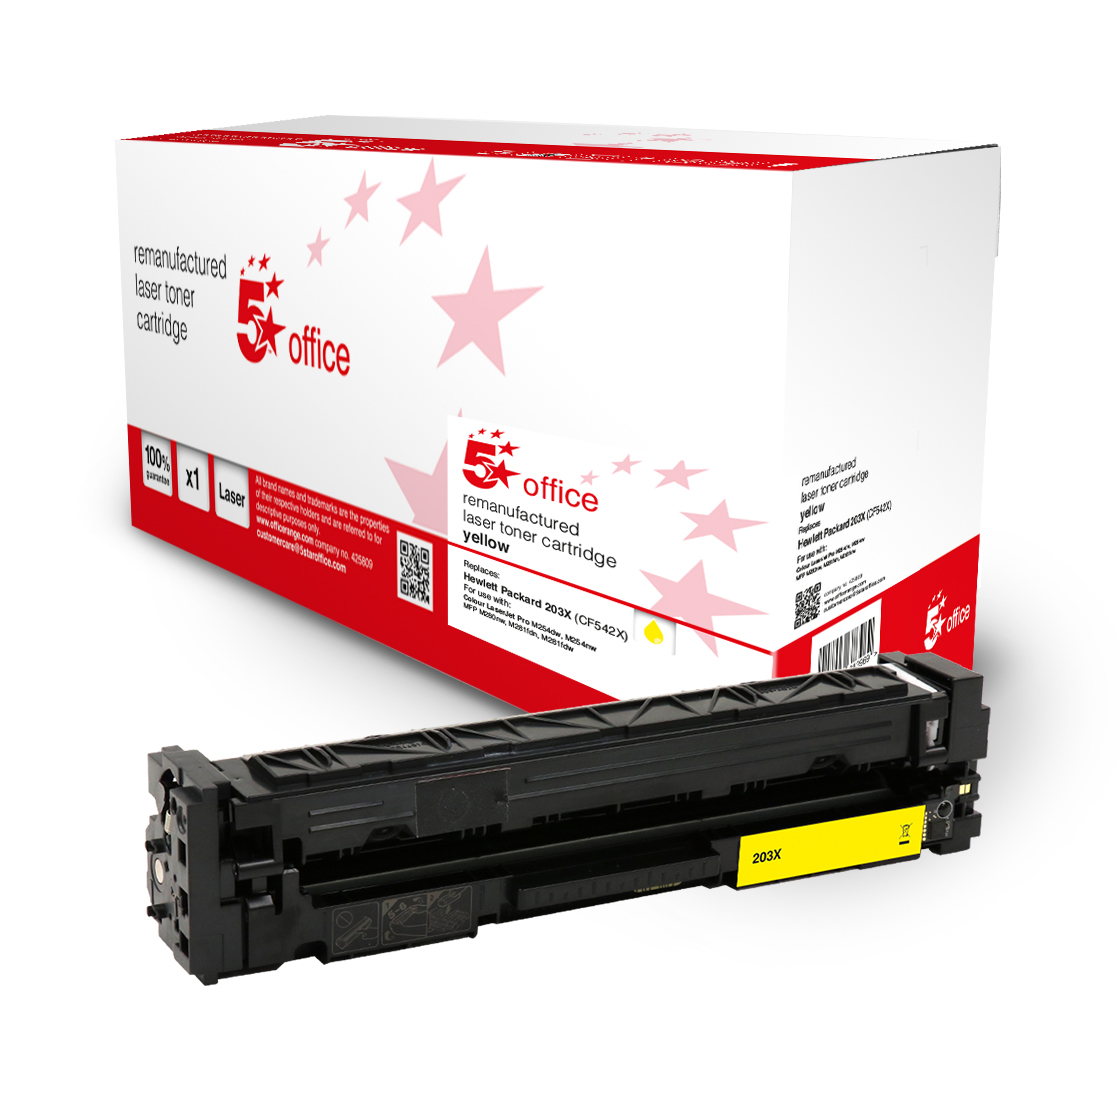 5 Star Office Remanufactured Toner Cartridge Page Life Yellow 2500pp HP 203X CF542X Alternative